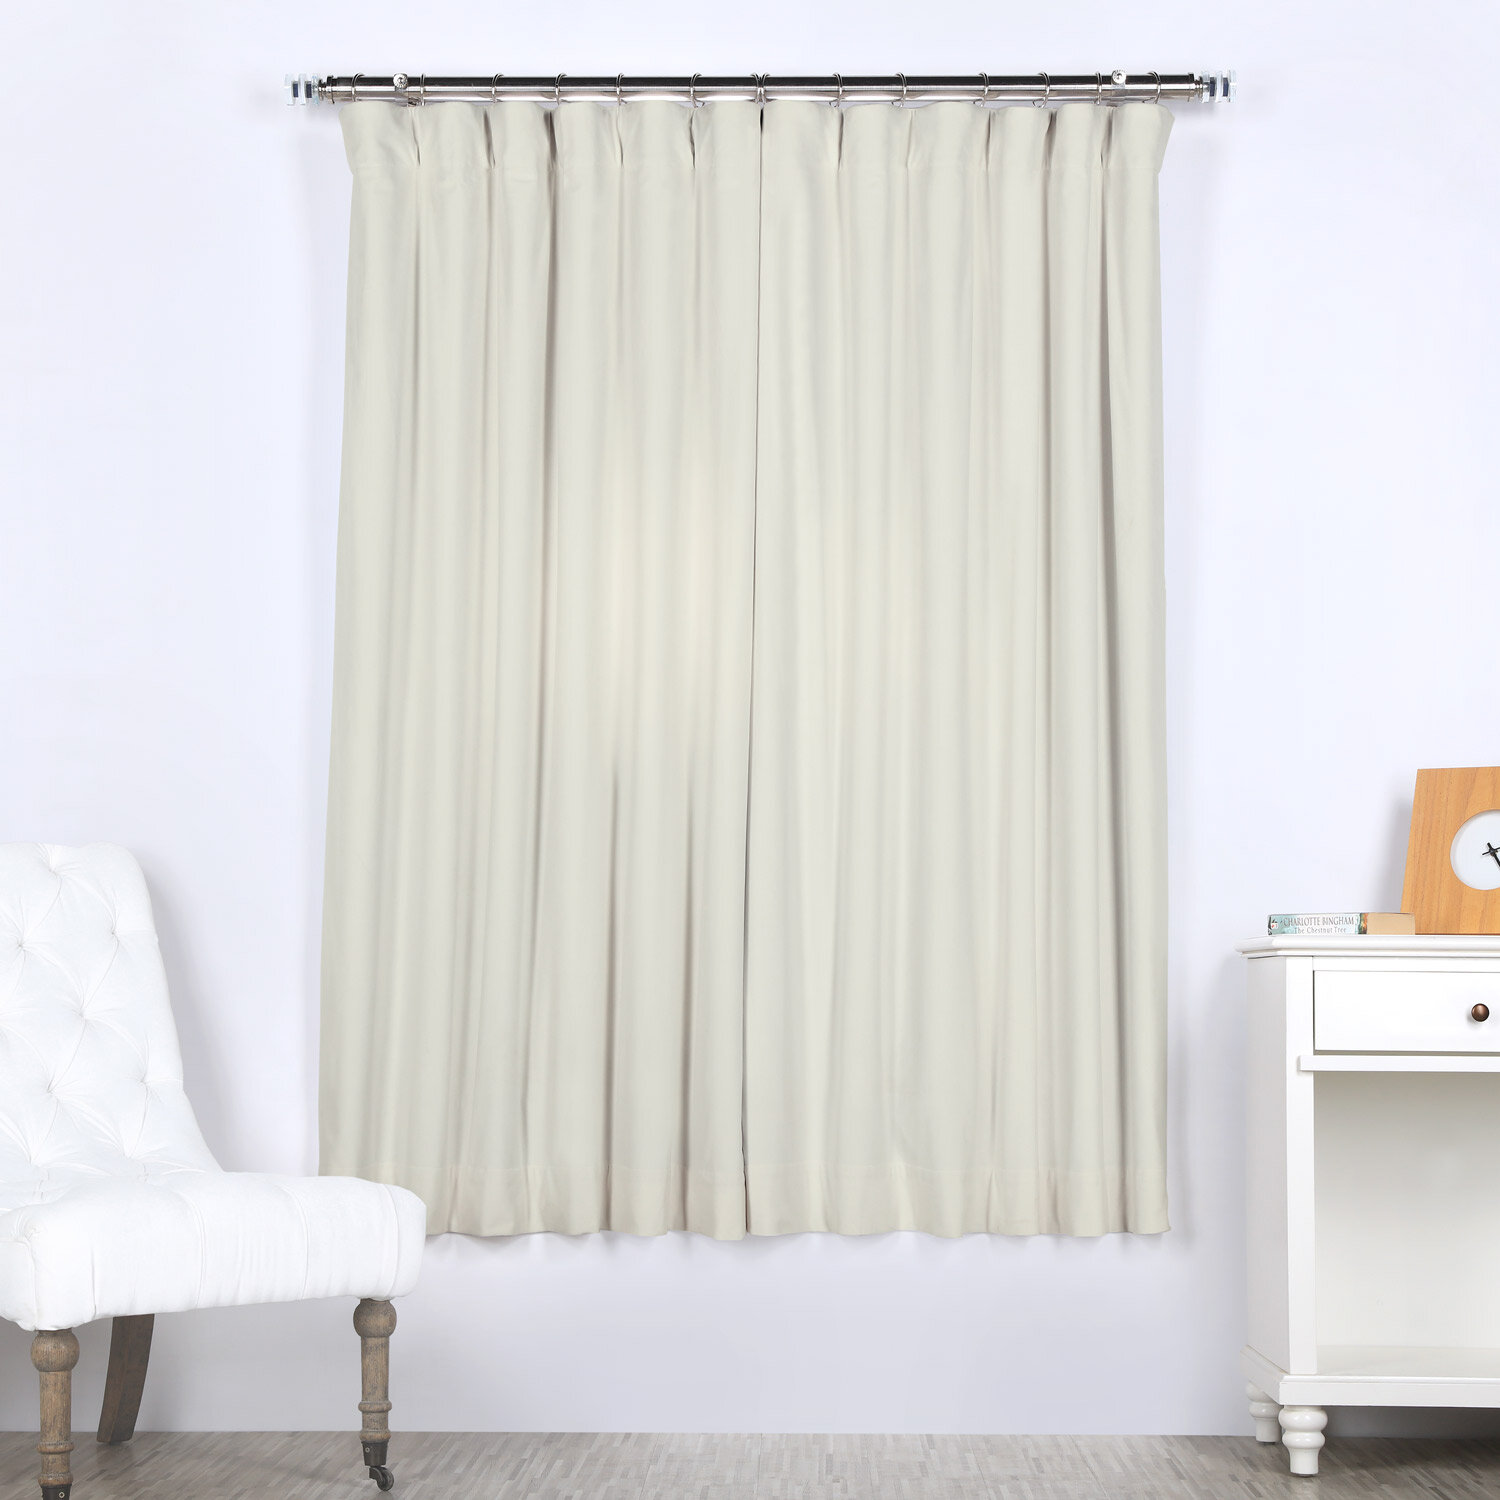 Curtains Drapes Free Shipping Over 35 Wayfair